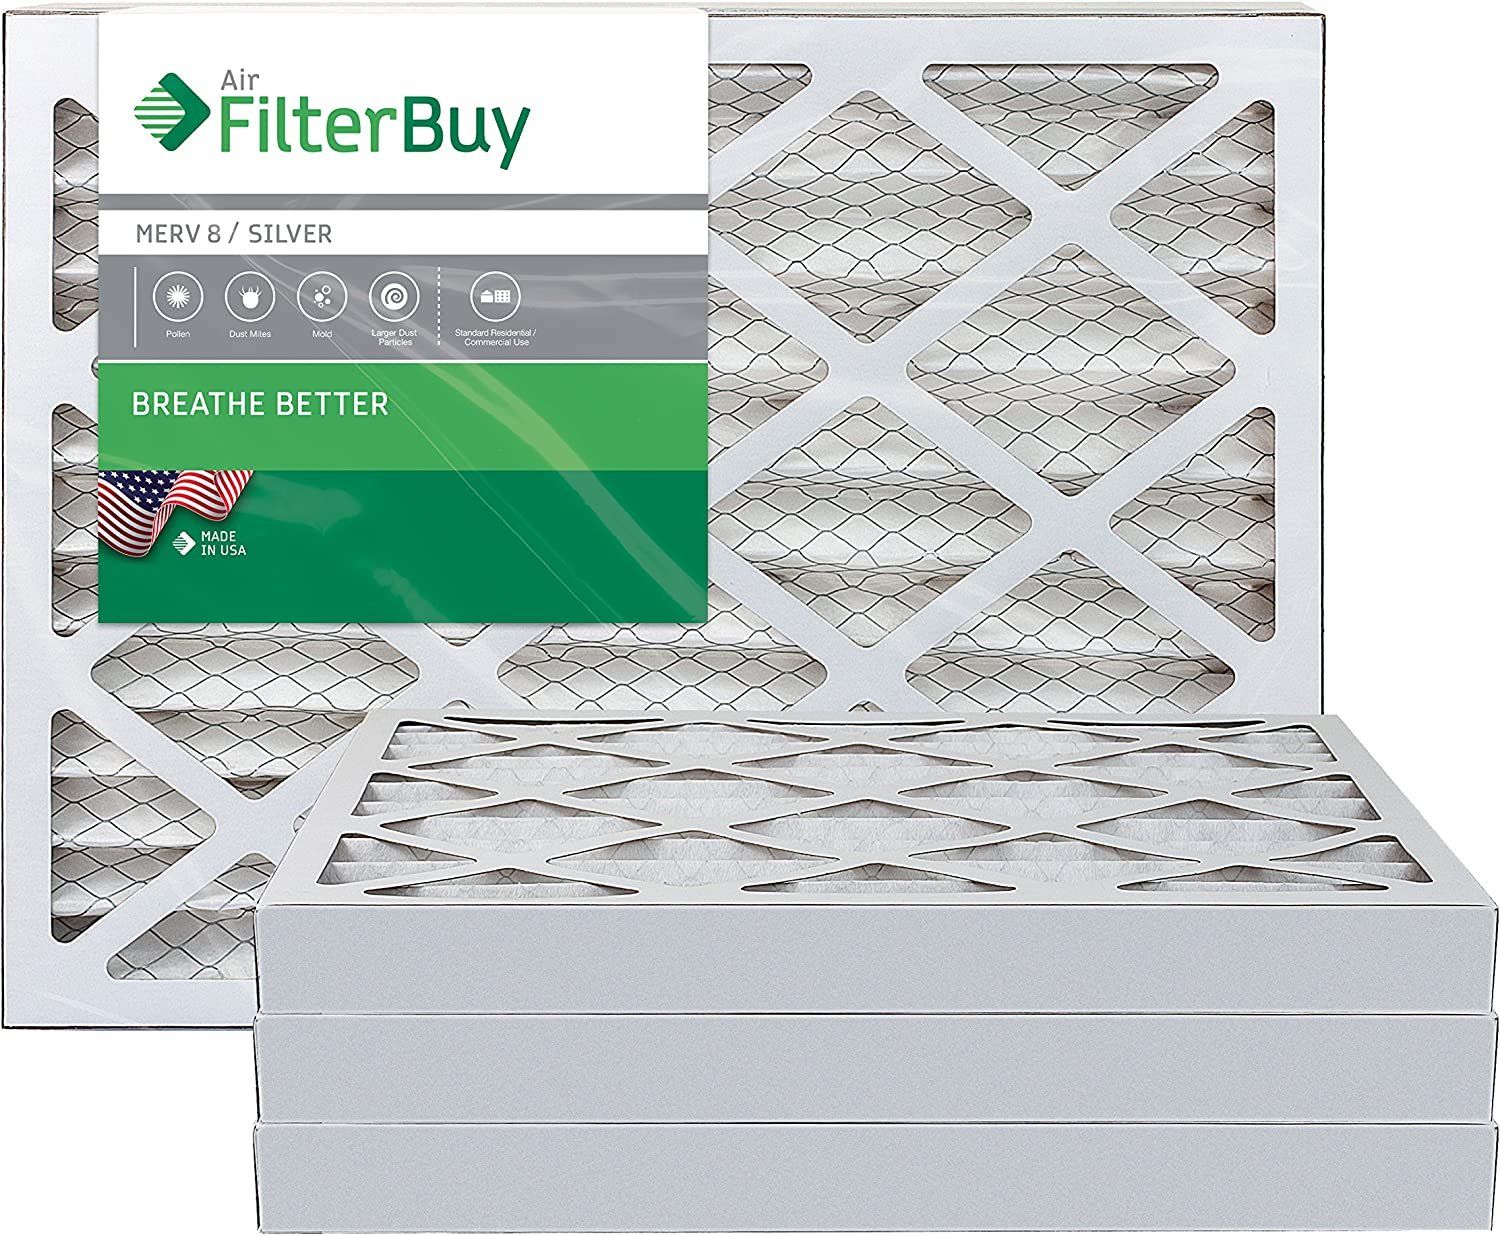 FilterBuy 14x24x2 MERV 8 Pleated AC Furnace Air Filter, (Pack of 4 Filters), 14x24x2 – Silver